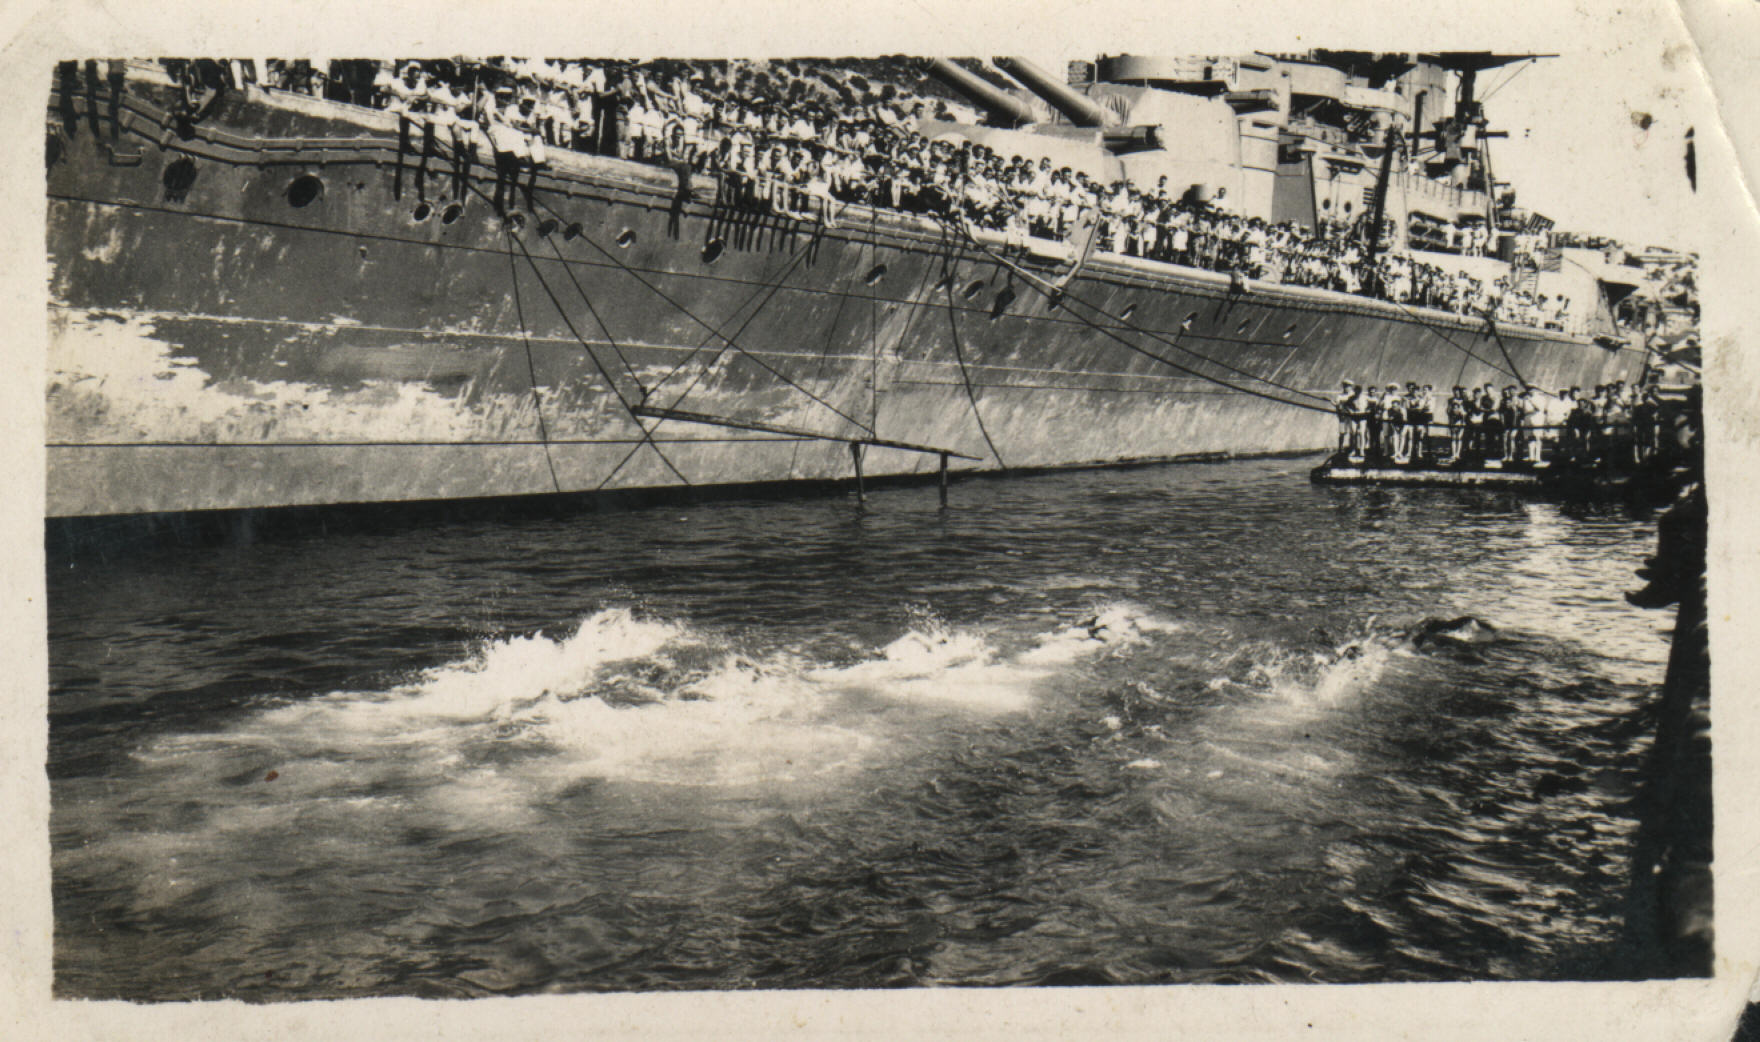 Swimminf races alongside Hood, 1940